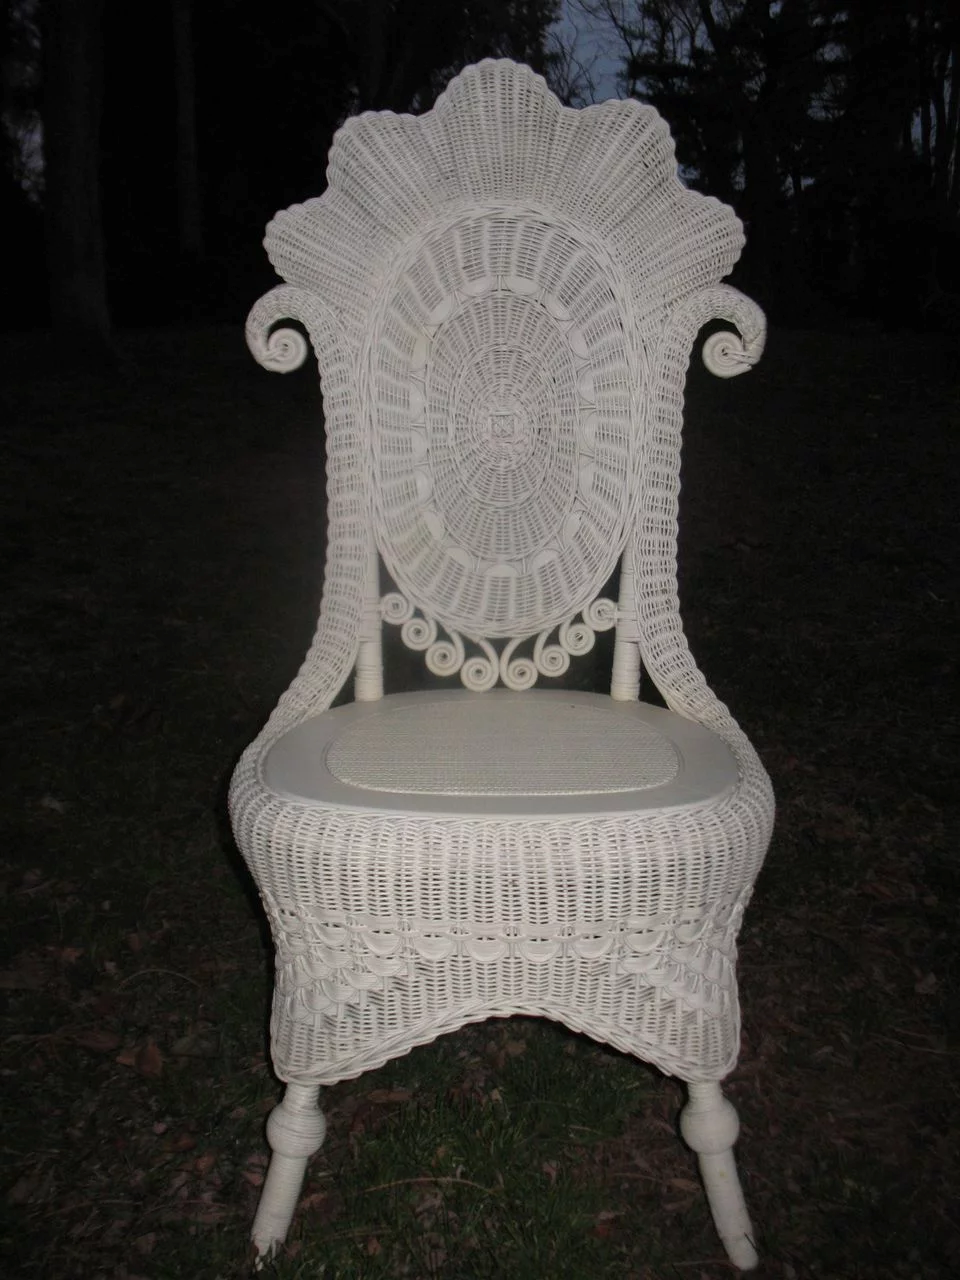 Fancy Antique Victorian Wicker Reception Chair Circa 1890 S Dovetail Antiques And Collectibles R Victorian Wicker Vintage Wicker Furniture Wicker Furniture